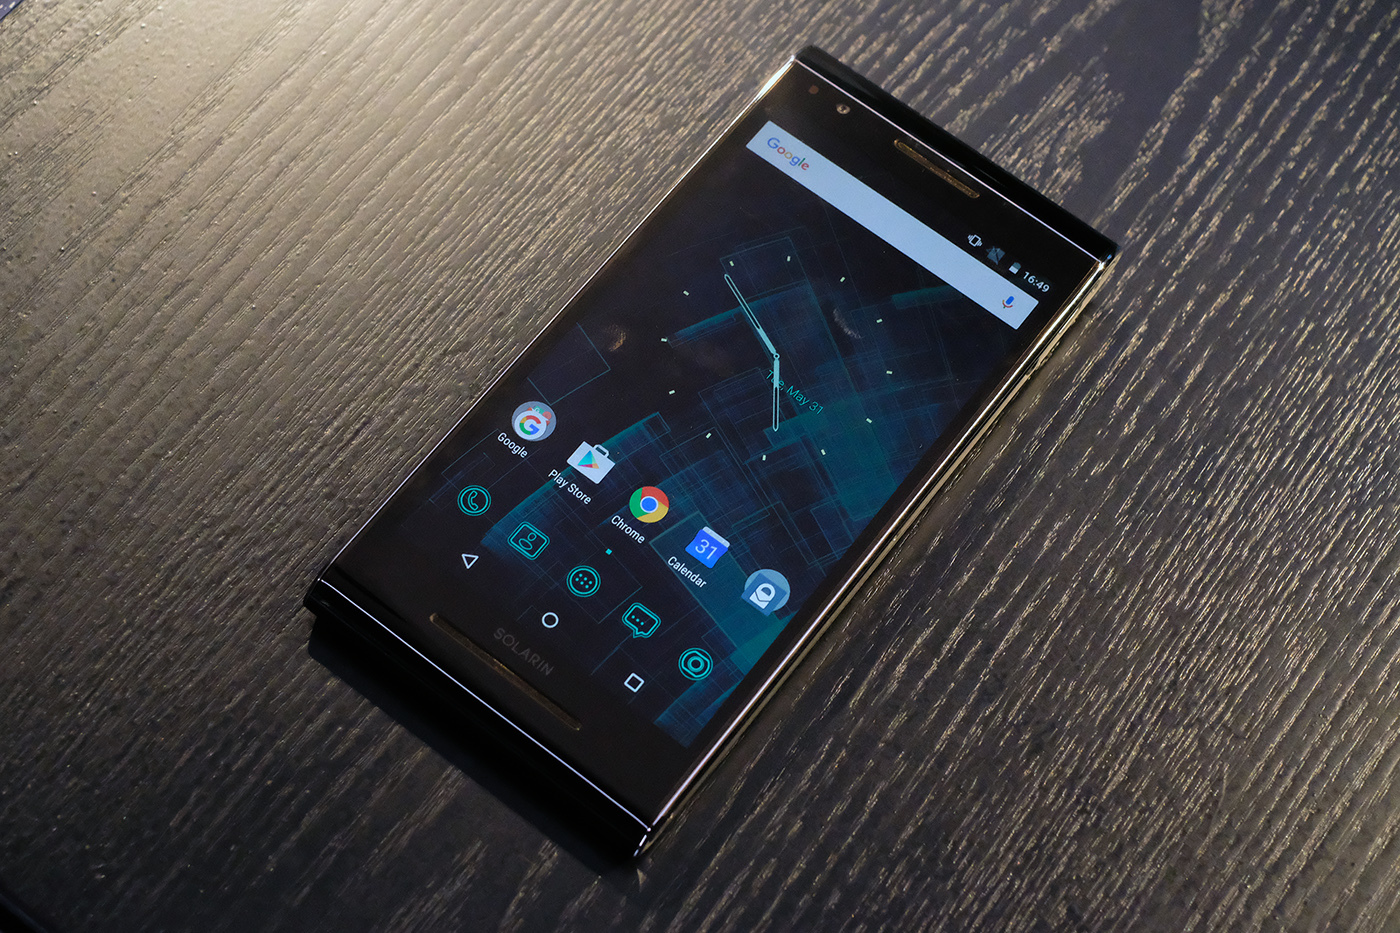 A closer look at that $14,000 Android phone